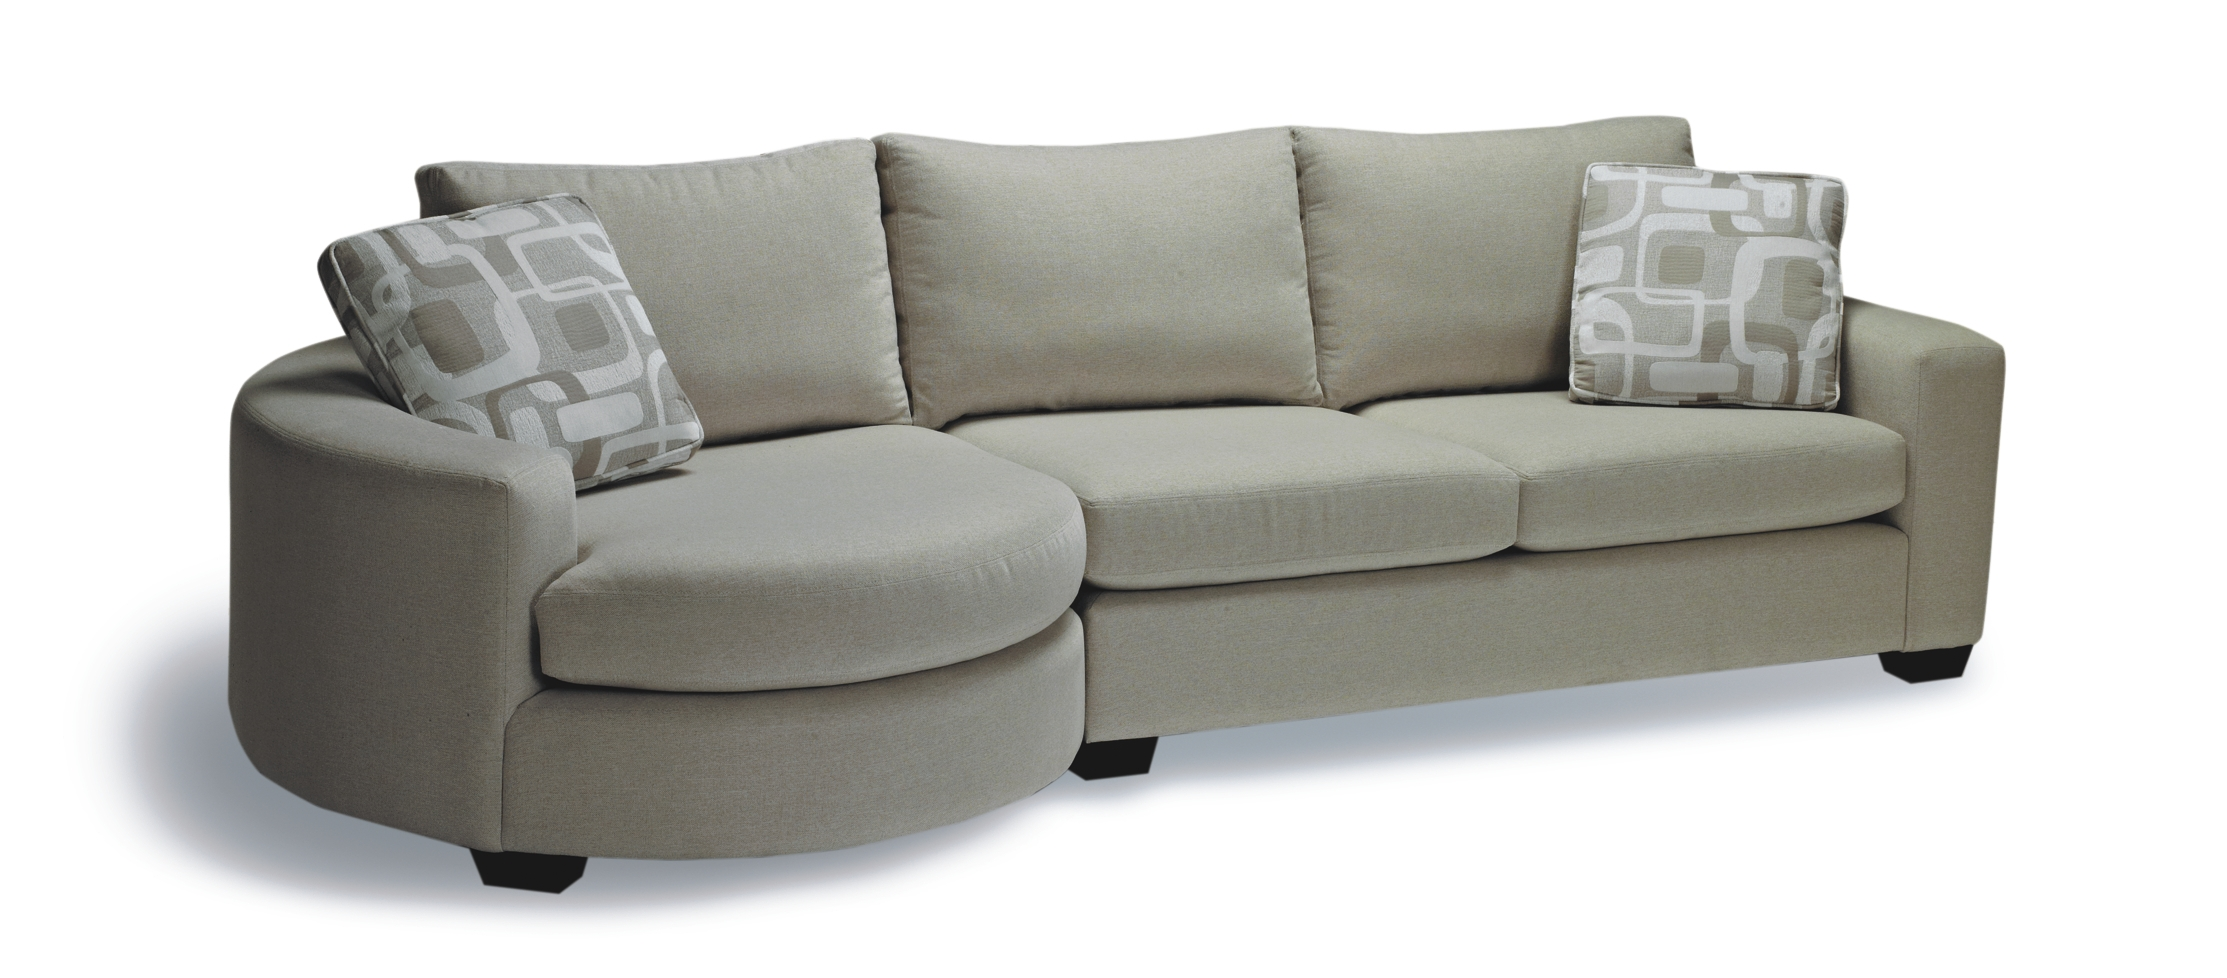 Connor Sectional Sofa So Good